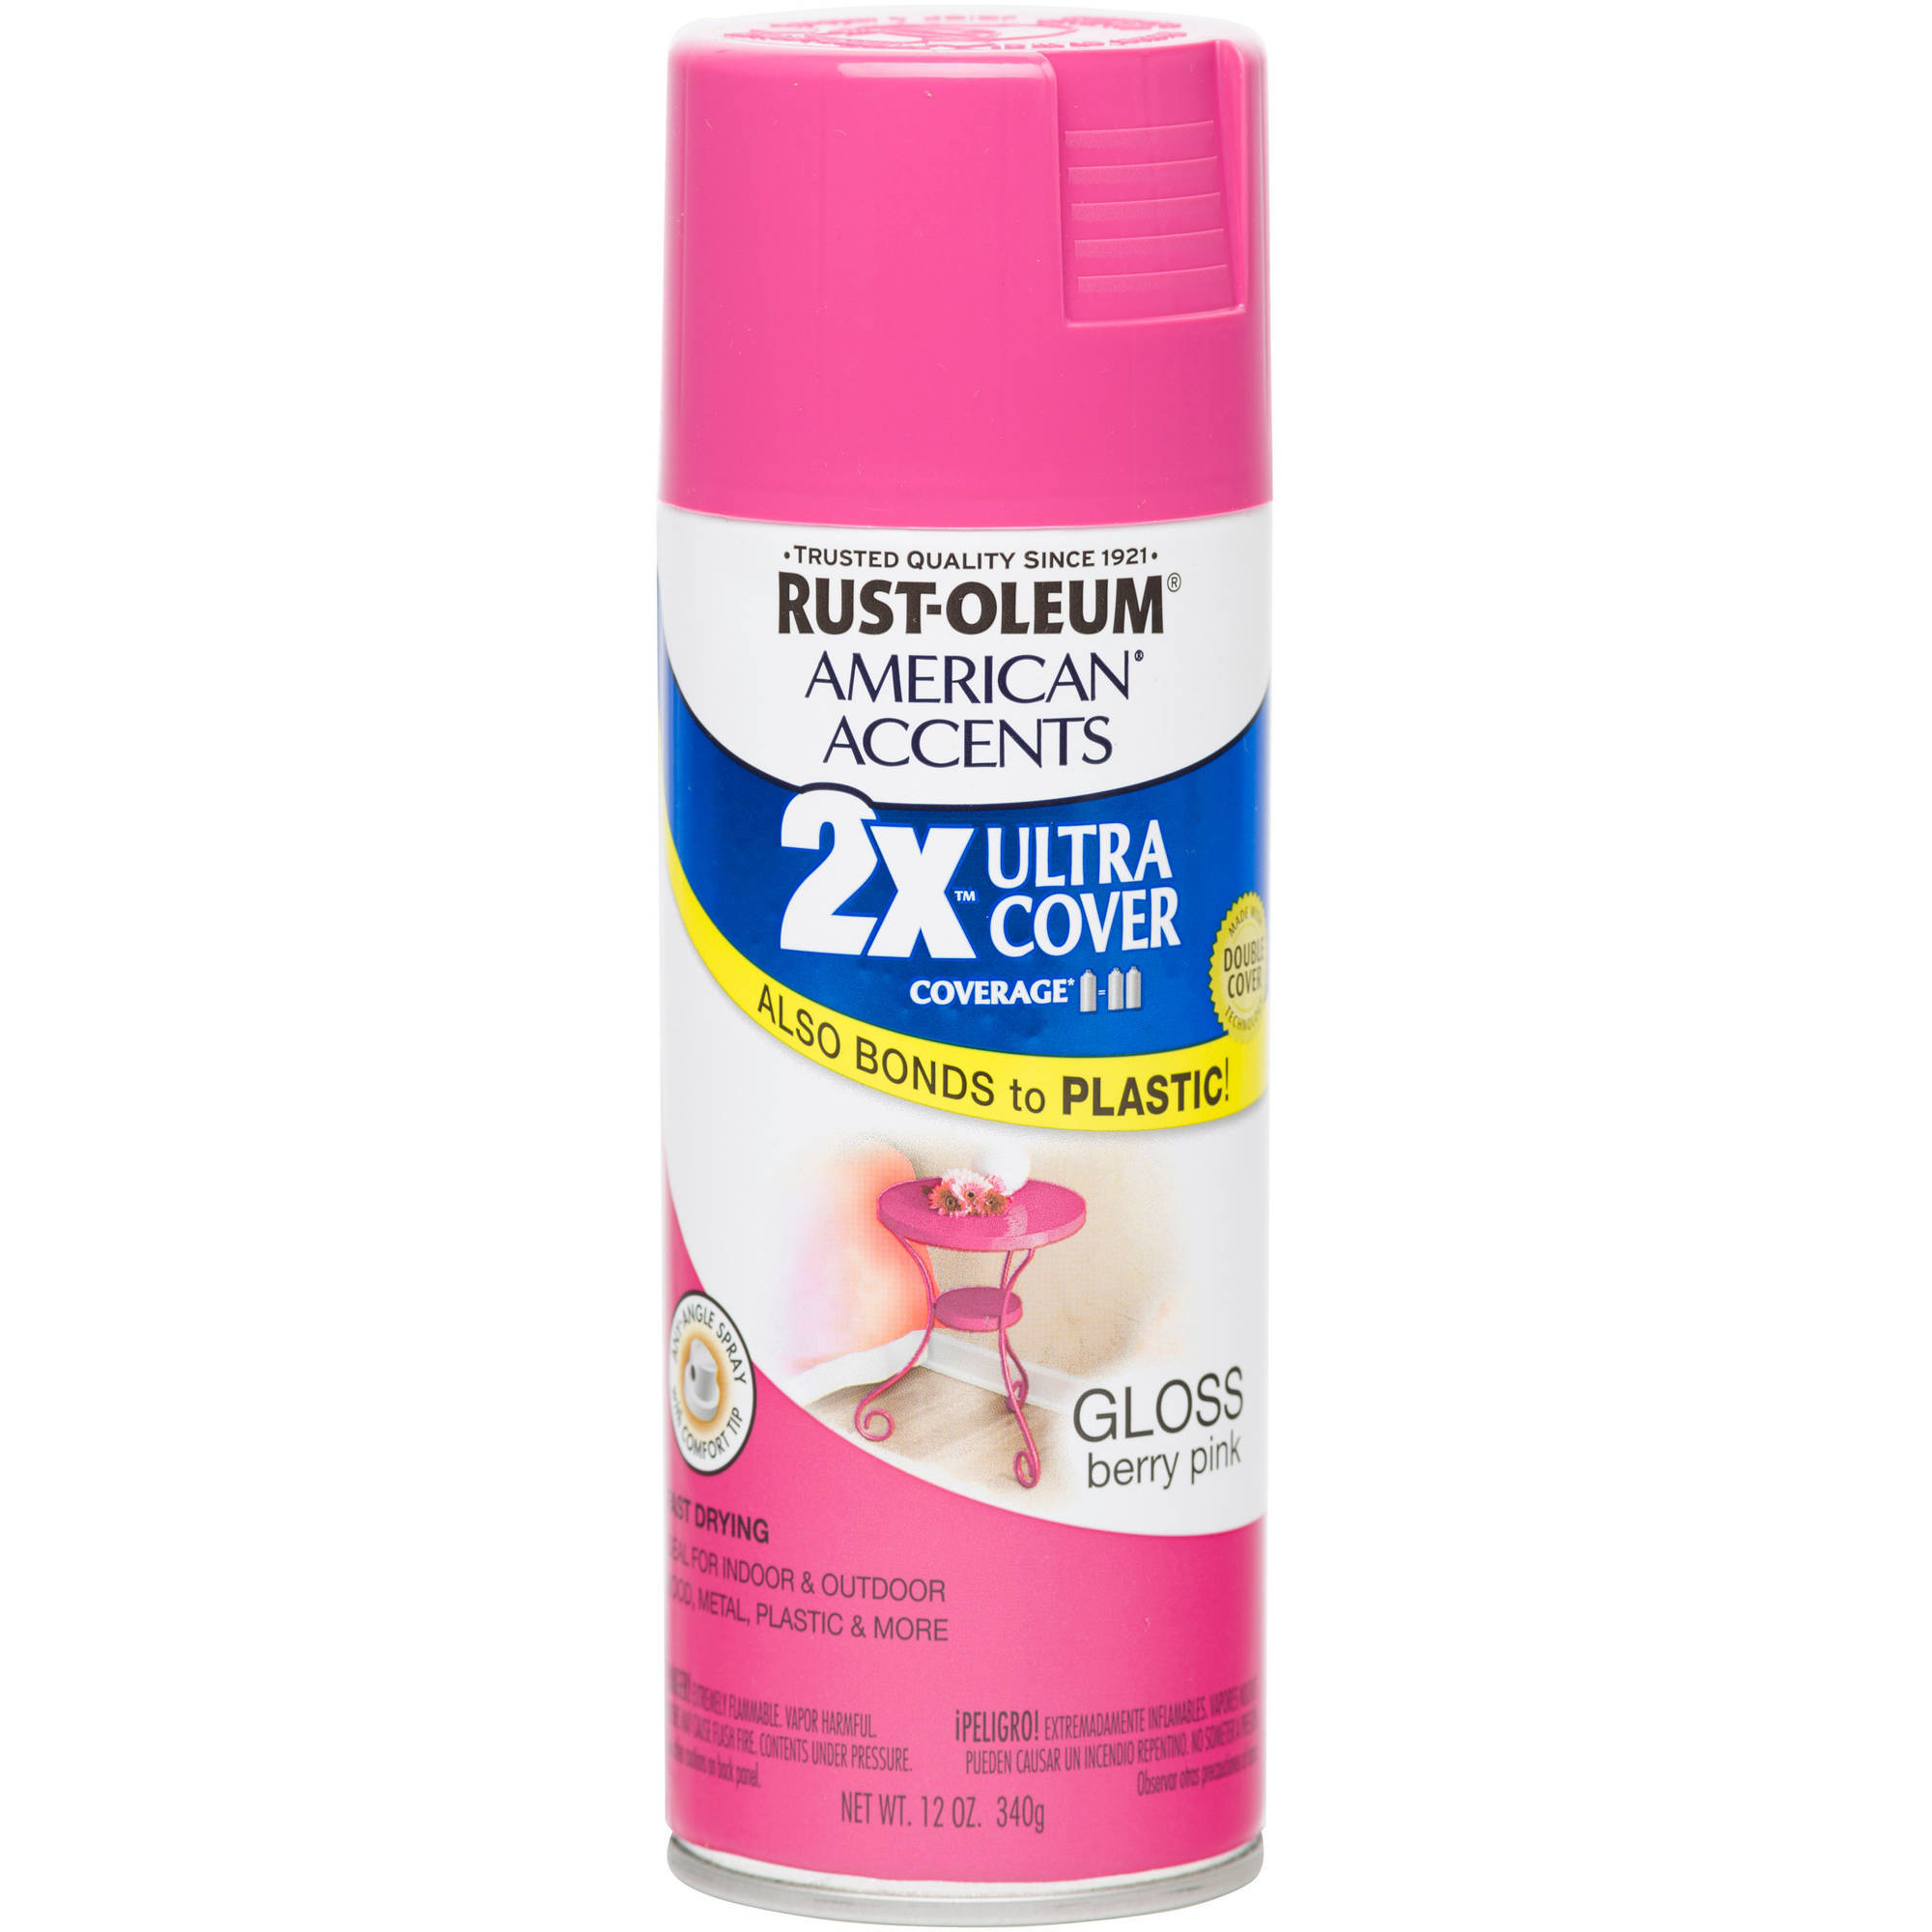 Rust Oleum American Accents Ultra Cover 2x Gloss Berry Pink Spray Paint And Primer In 1 12 Oz Walmart Com